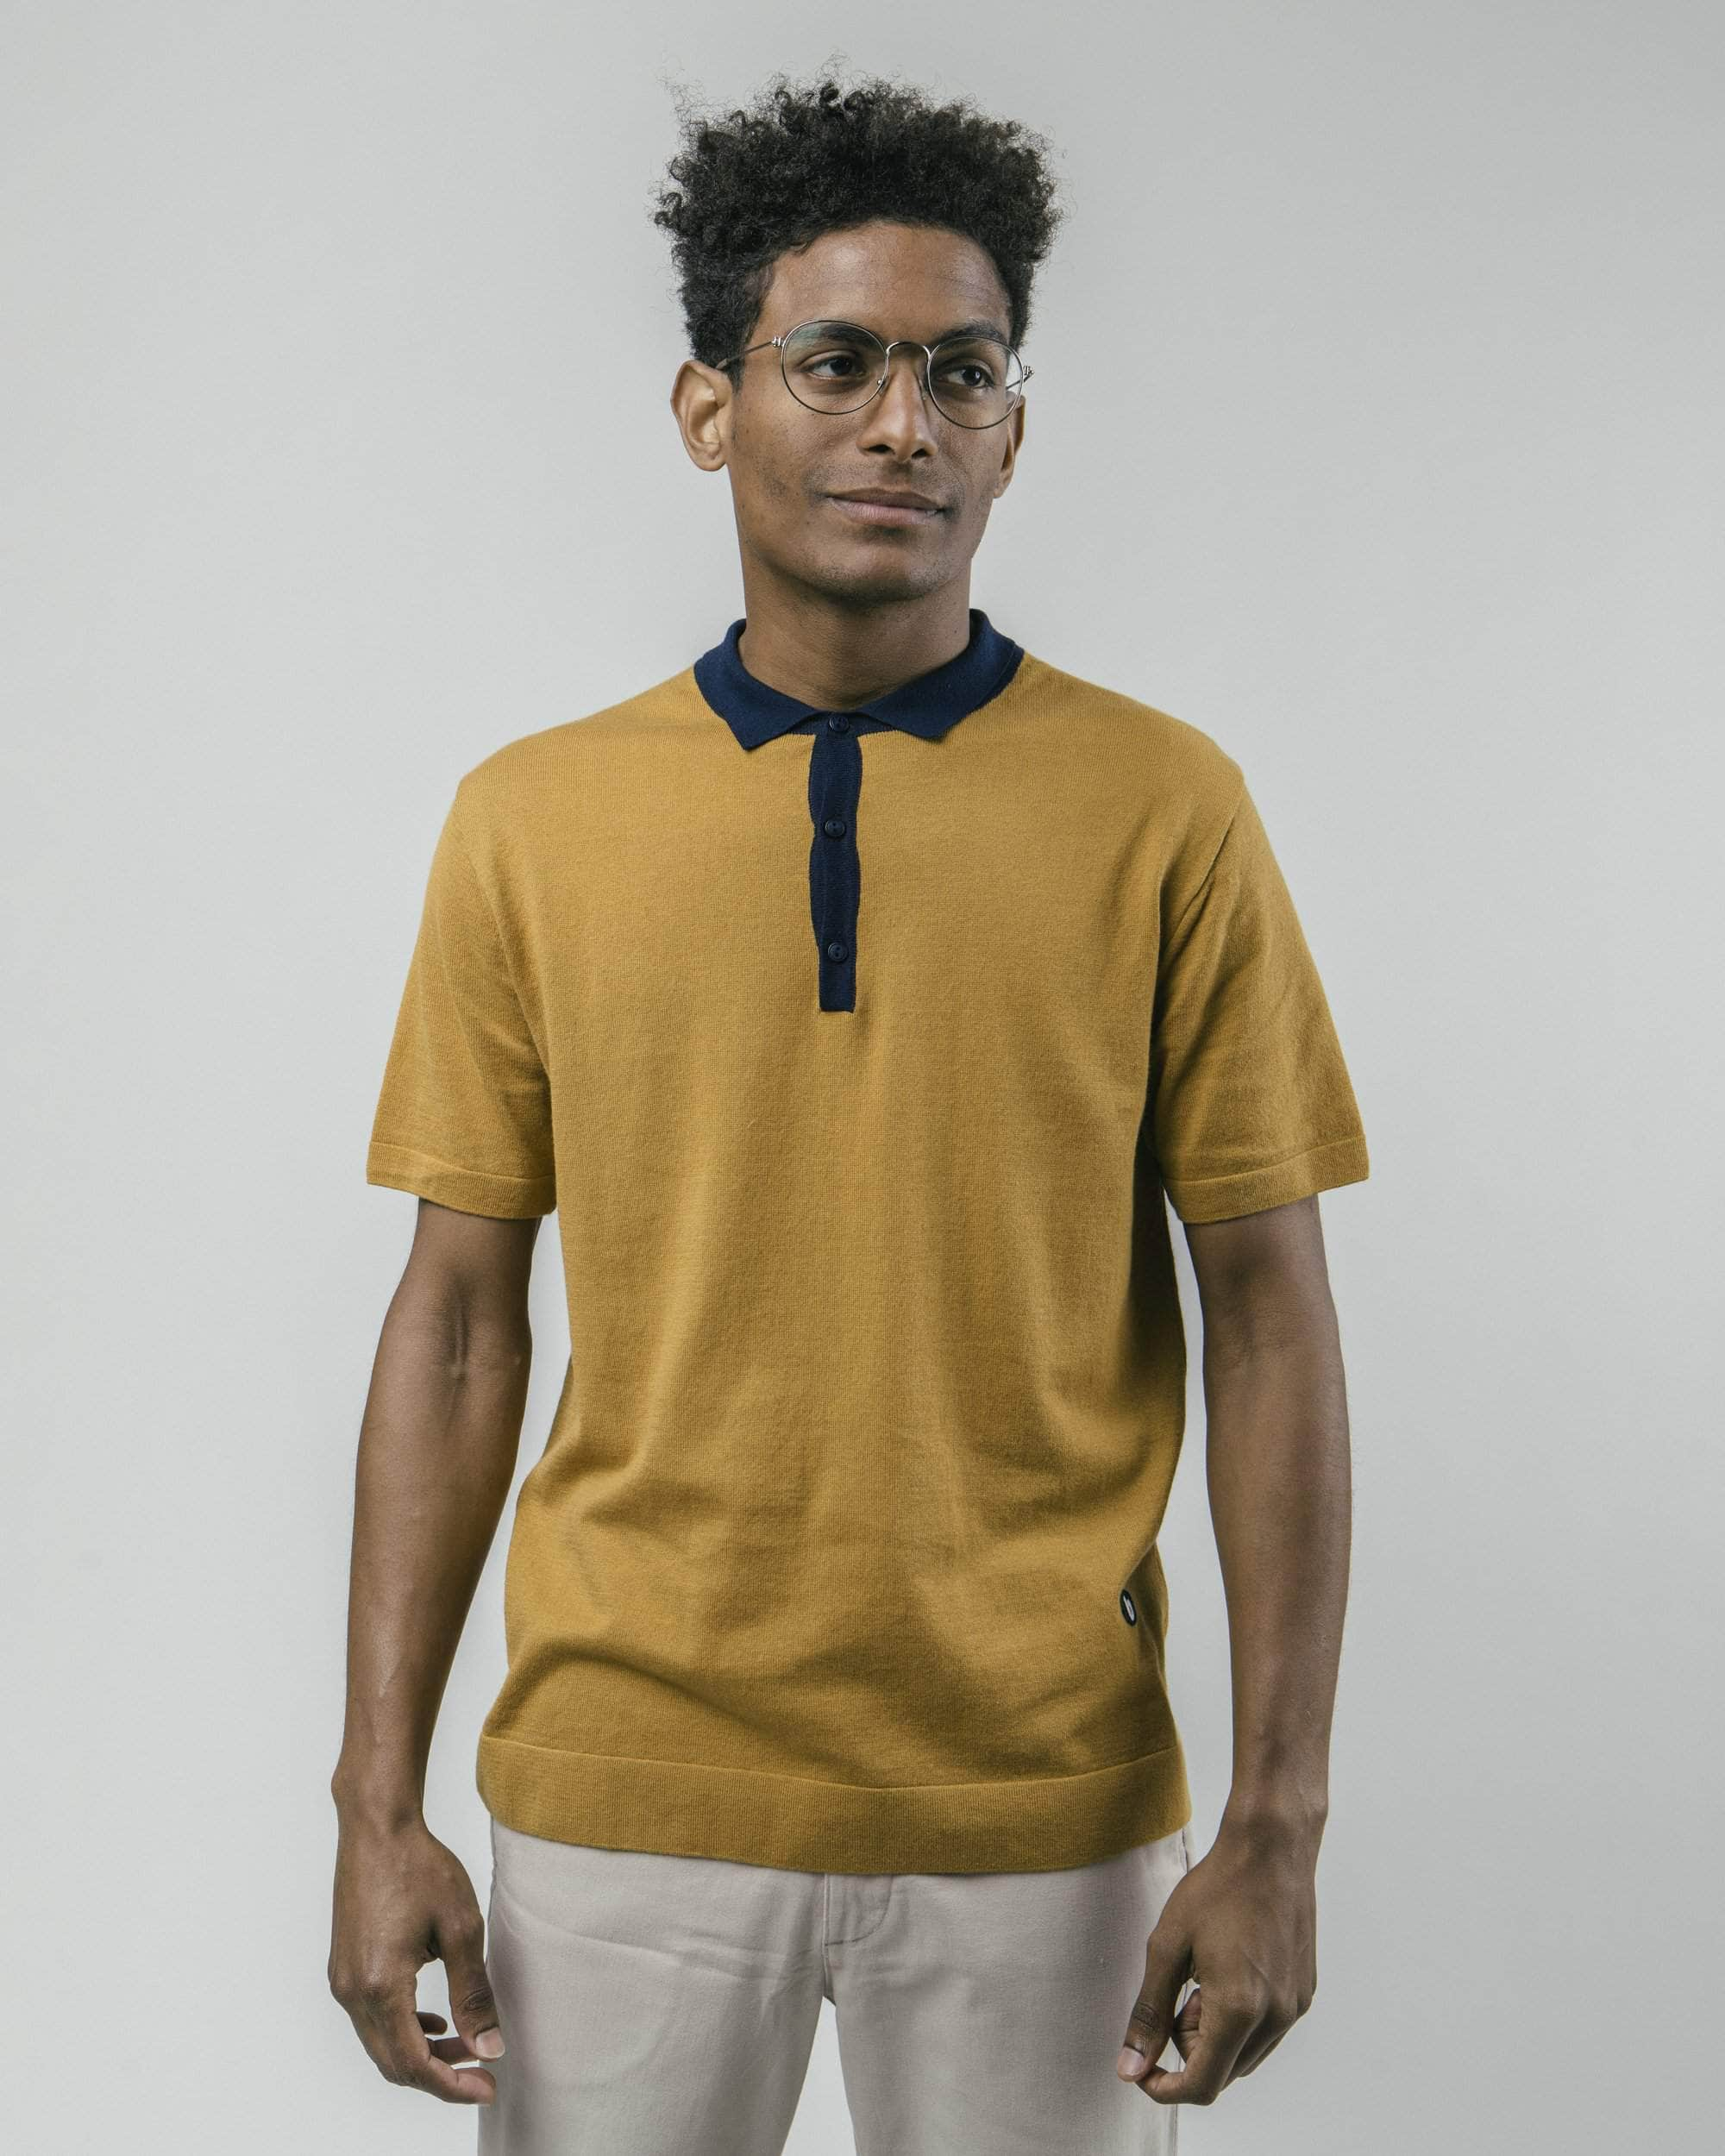 Brava Fabrics - Mens Polo-Shirt - Polo T-Shirt - 100% Organic Cotton - Model Navy Ochre